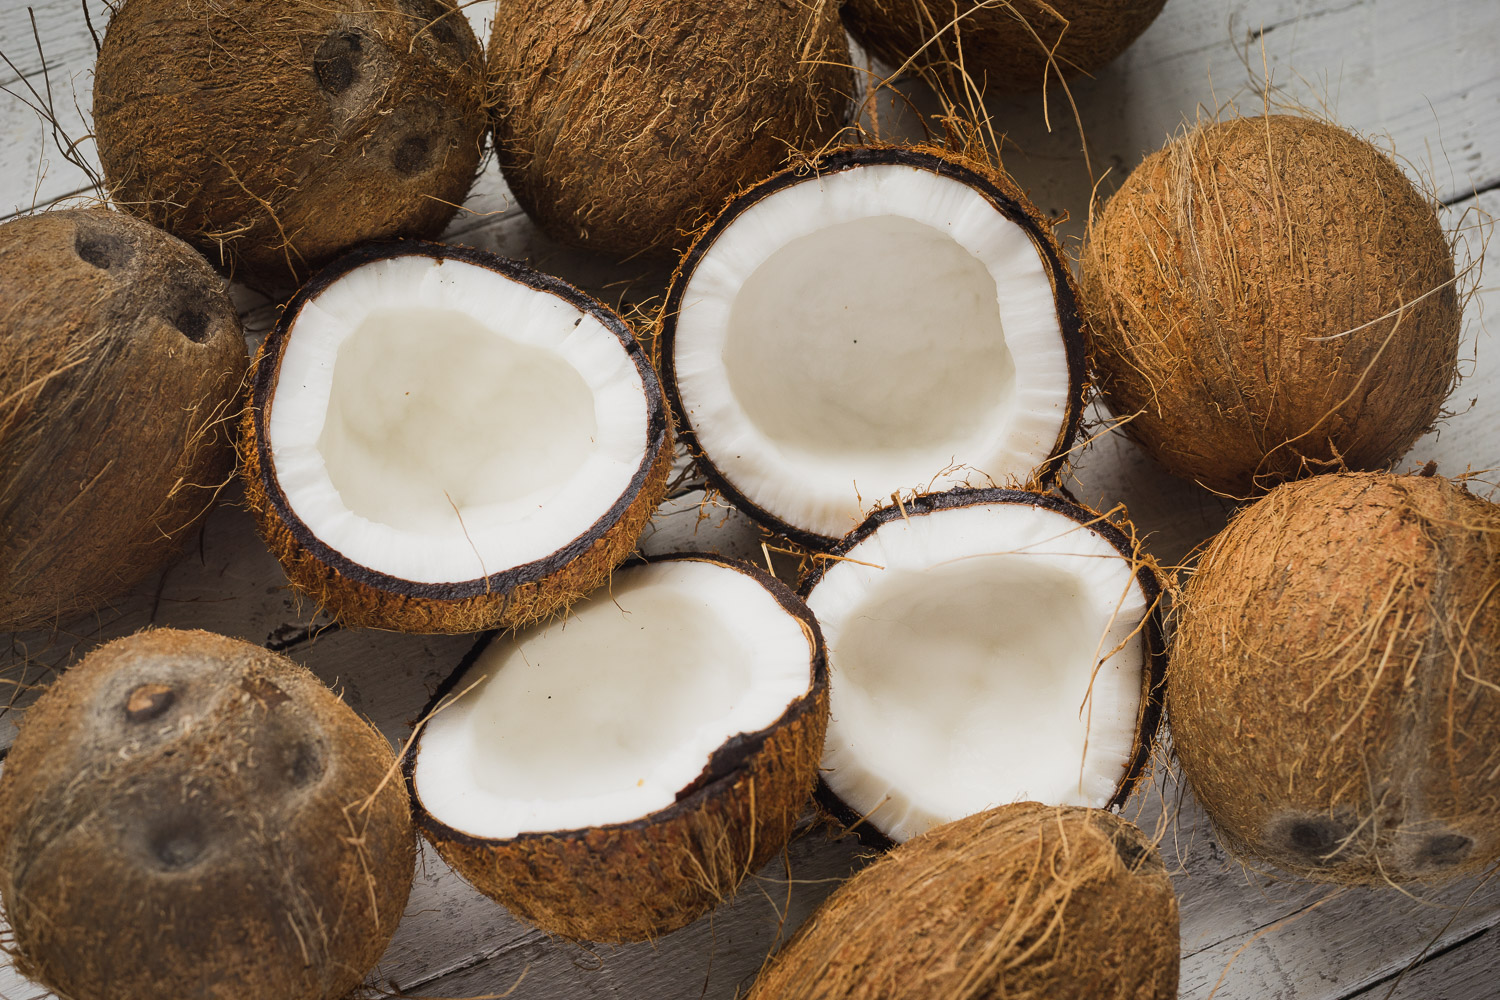 coconuts-healthy-icecream-vegan-organic-dairyfree.jpg